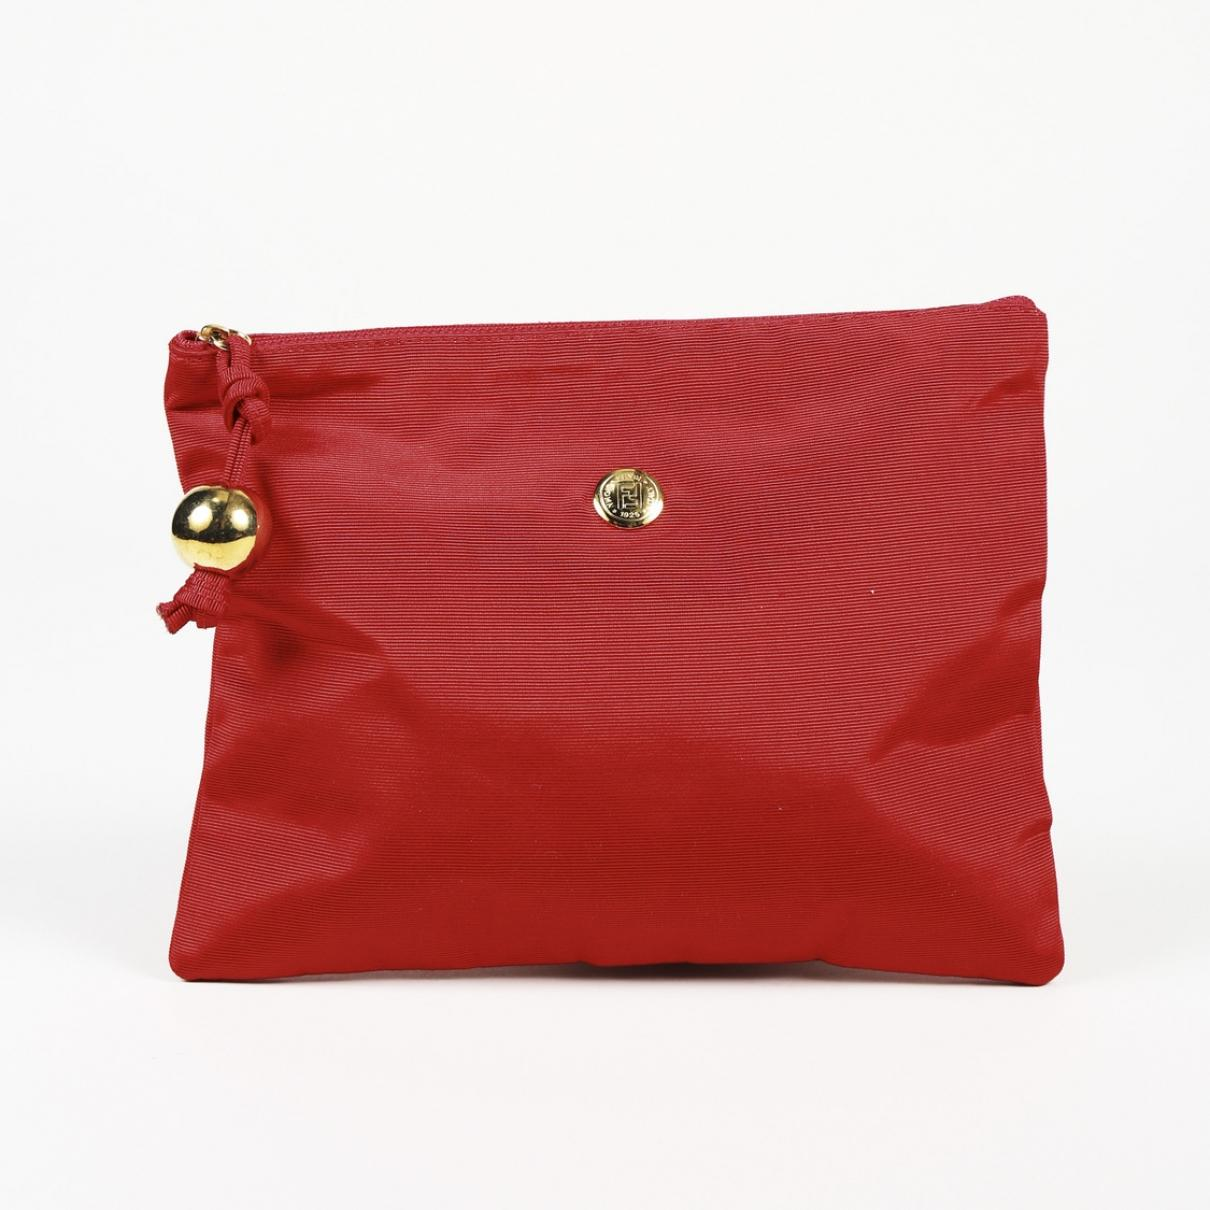 f3437cc21d81 Lyst - Fendi Pre-owned Vintage Red Cloth Clutch Bags in Red